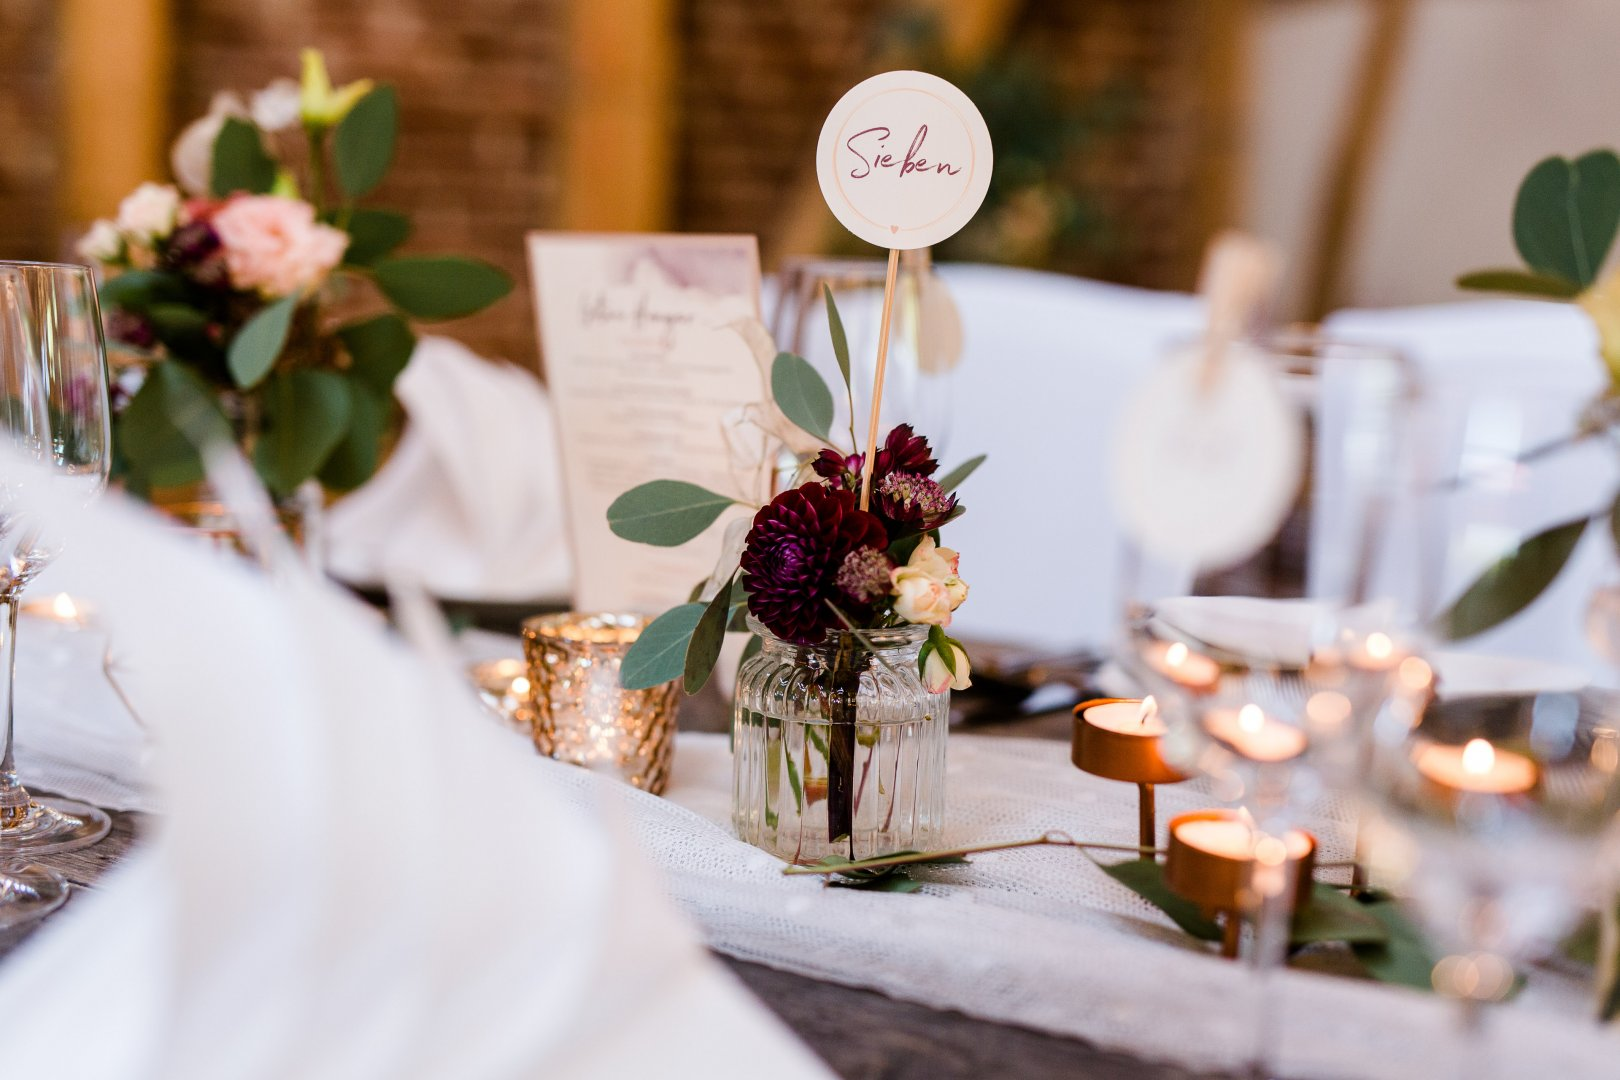 Photograph Centrepiece Rehearsal dinner Floral design Table Floristry Flower Flower Arranging Tableware Decoration Wedding reception Event Plant Meal Wedding banquet Wildflower Ceremony Tablecloth Party favor Candle Interior design Brunch Banquet Party